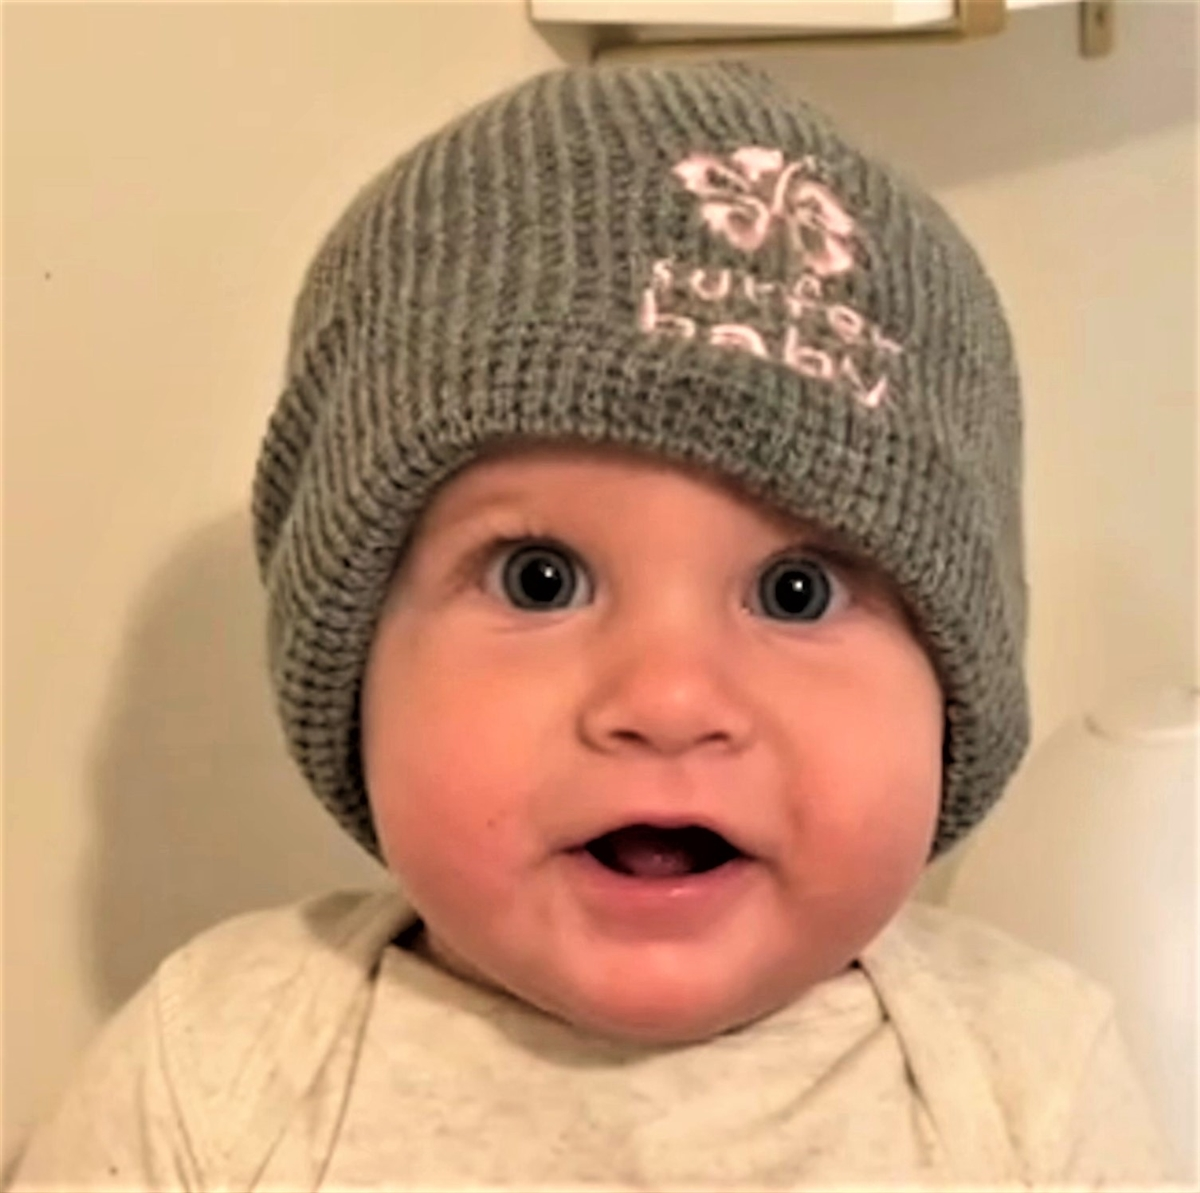 Better Surf than Sorry Surfer Baby Surfer Girl Cotton Beanie hat